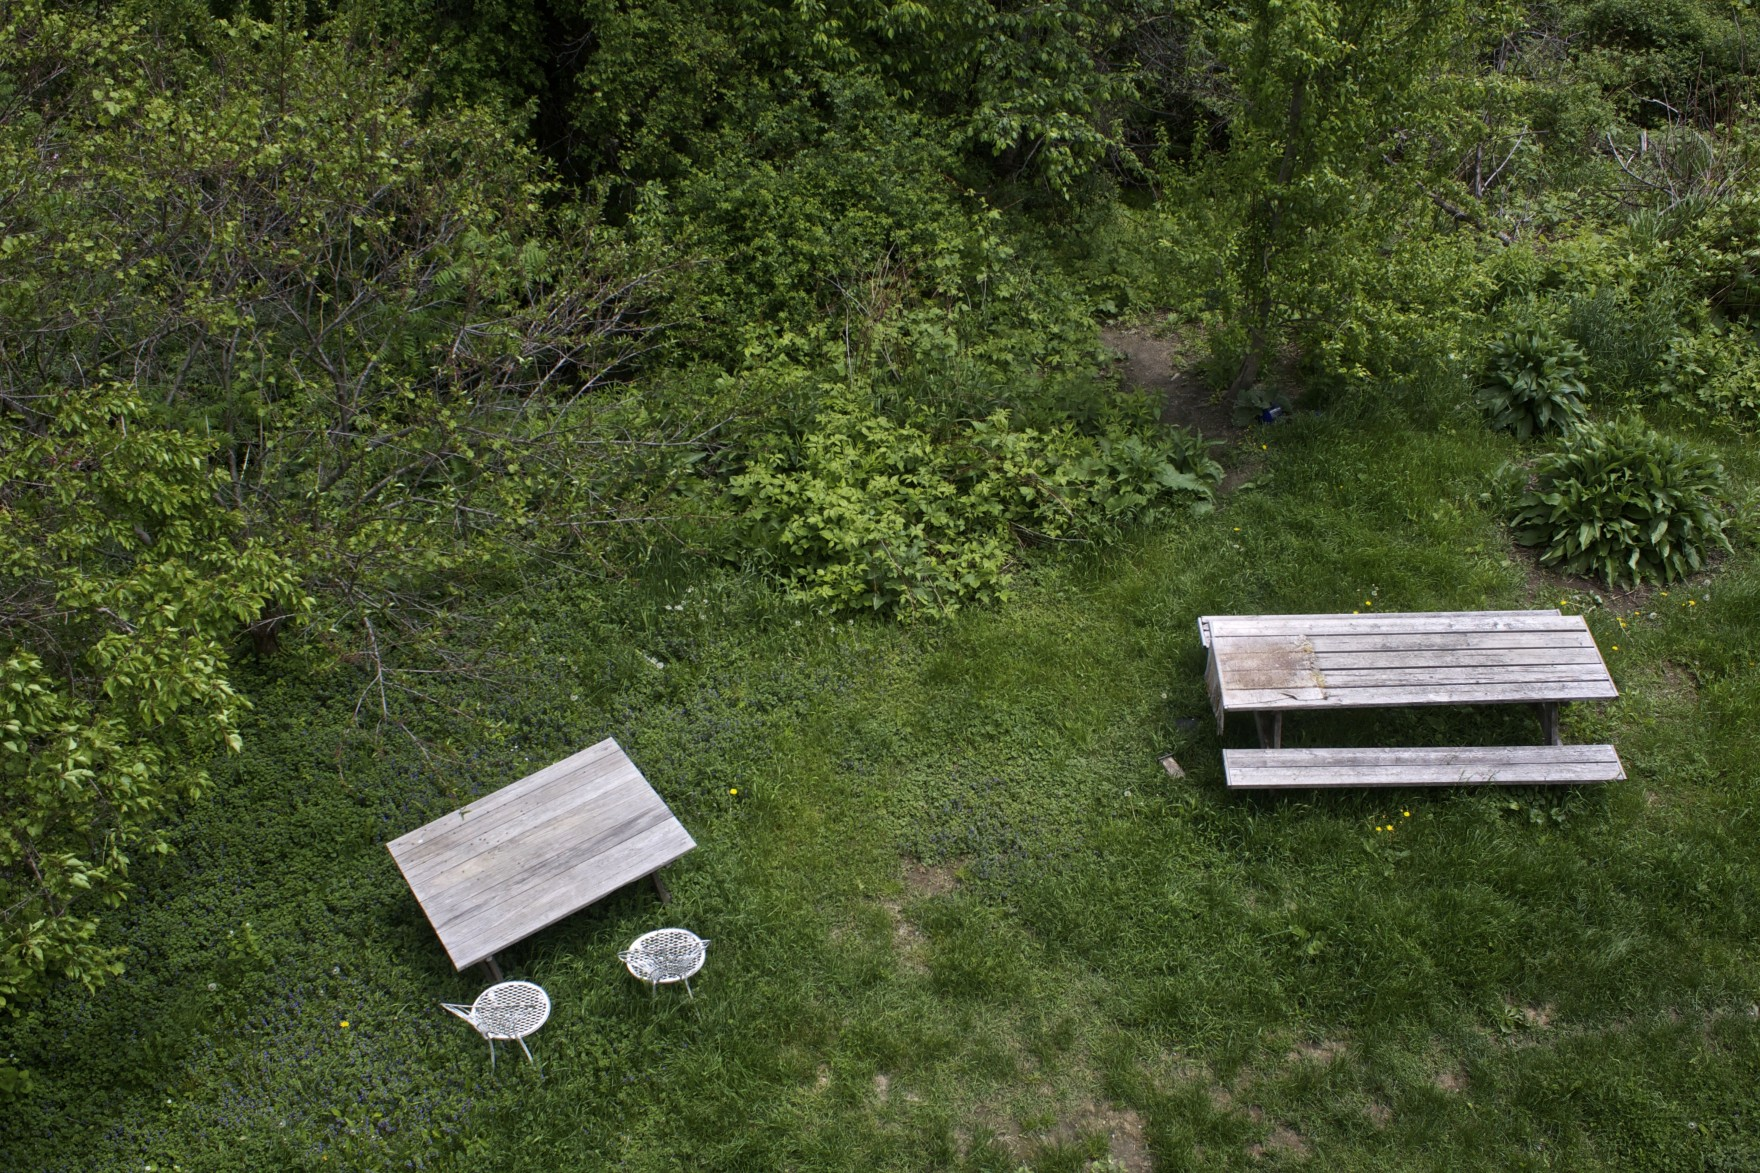 The Bored Vegetarian Picnic Tables